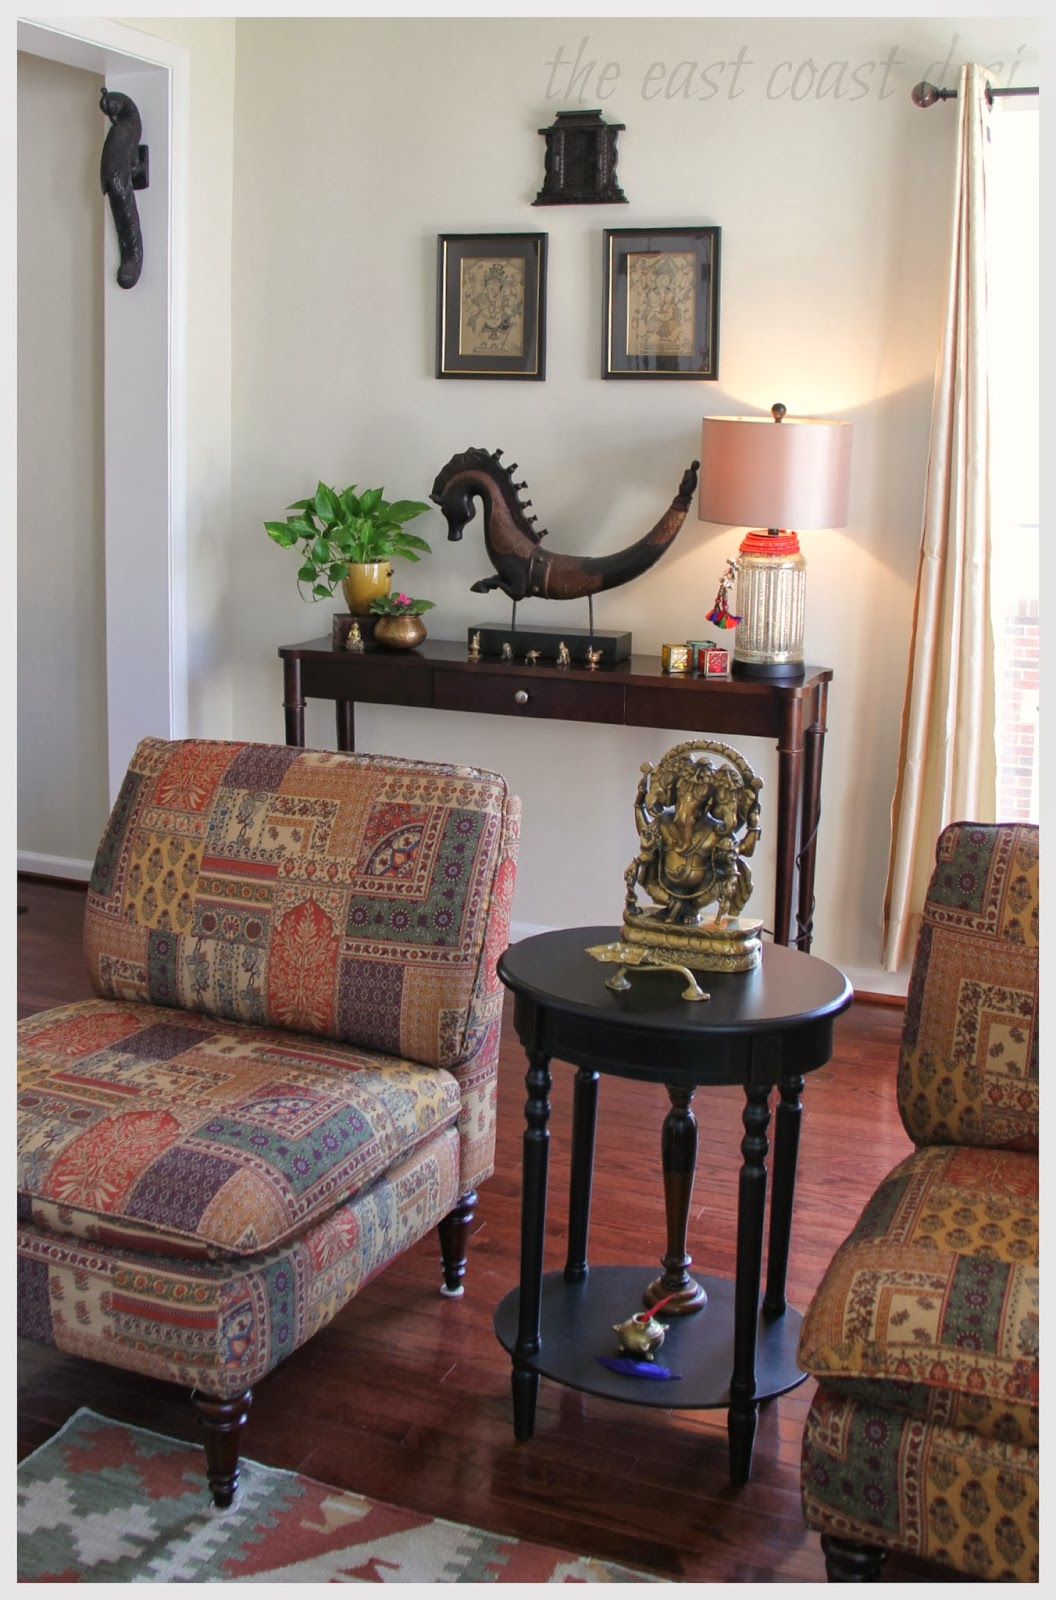 Interior Decorative Items The East Coast Desi My Living Room A Reflection Of India